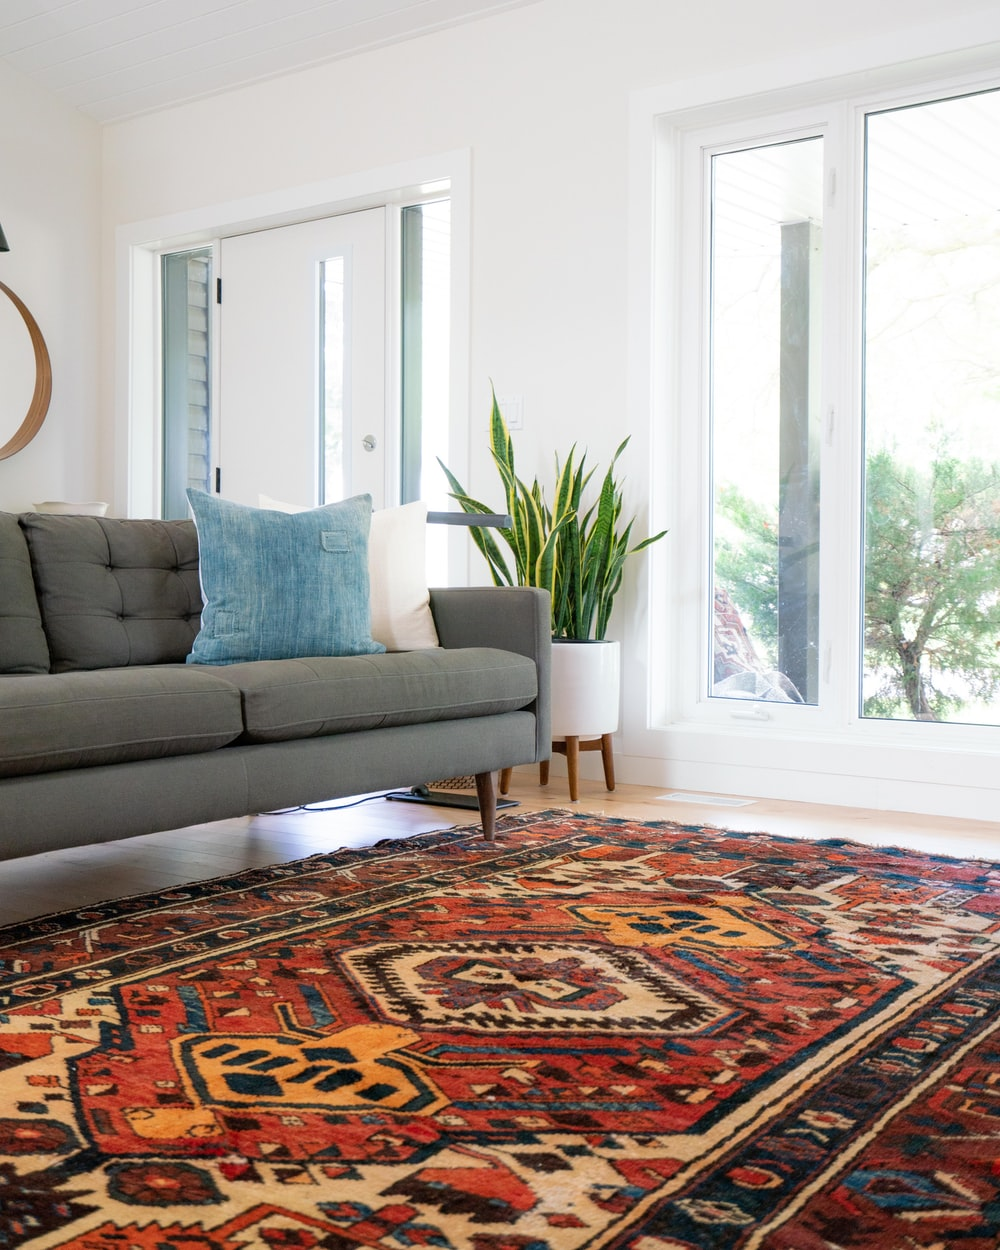 teal 2-seat couch and red area rug